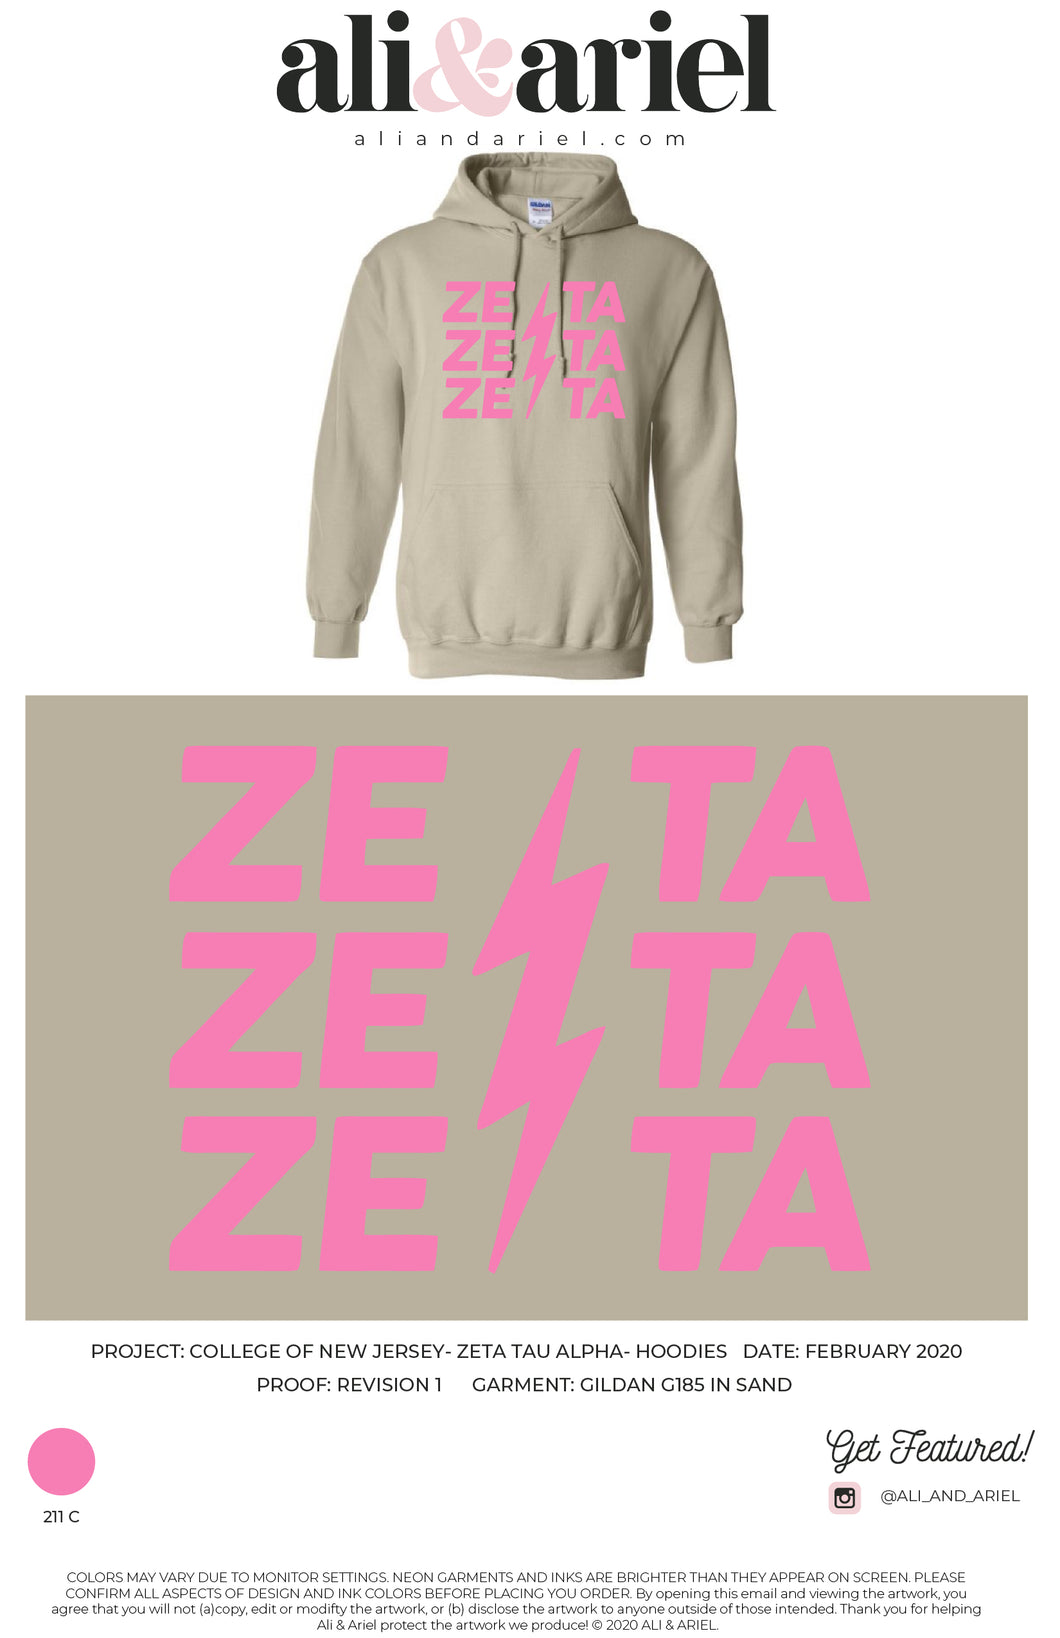 The College of New Jersey- Zeta Tau Alpha- Hoodies